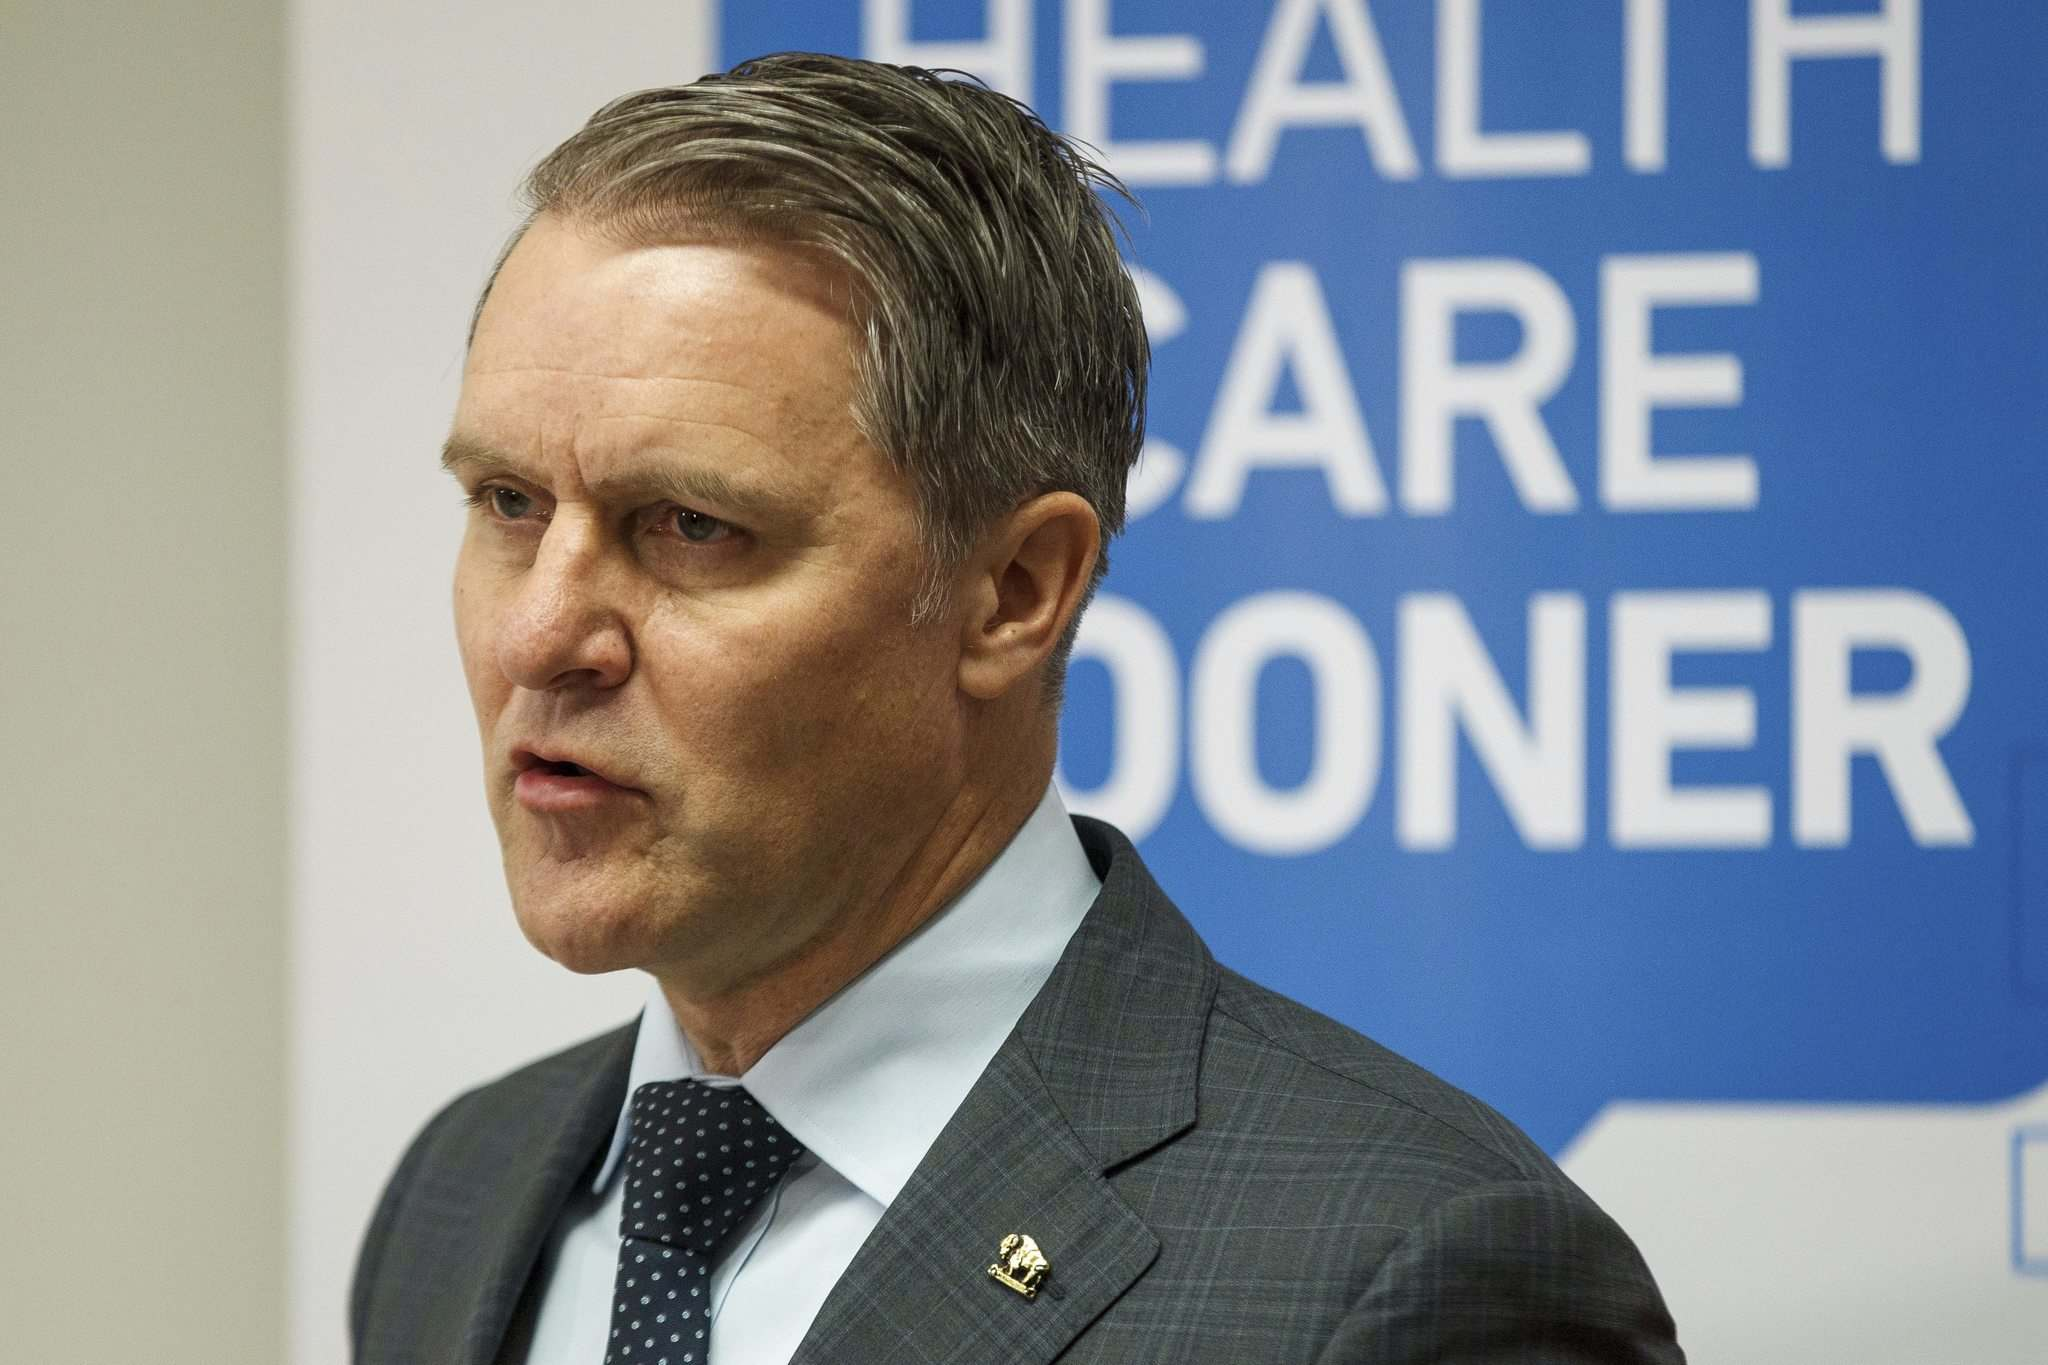 Health Minister Cameron Friesen disputed the relevance of some of the documents. (Mike Deal / Free Press files)